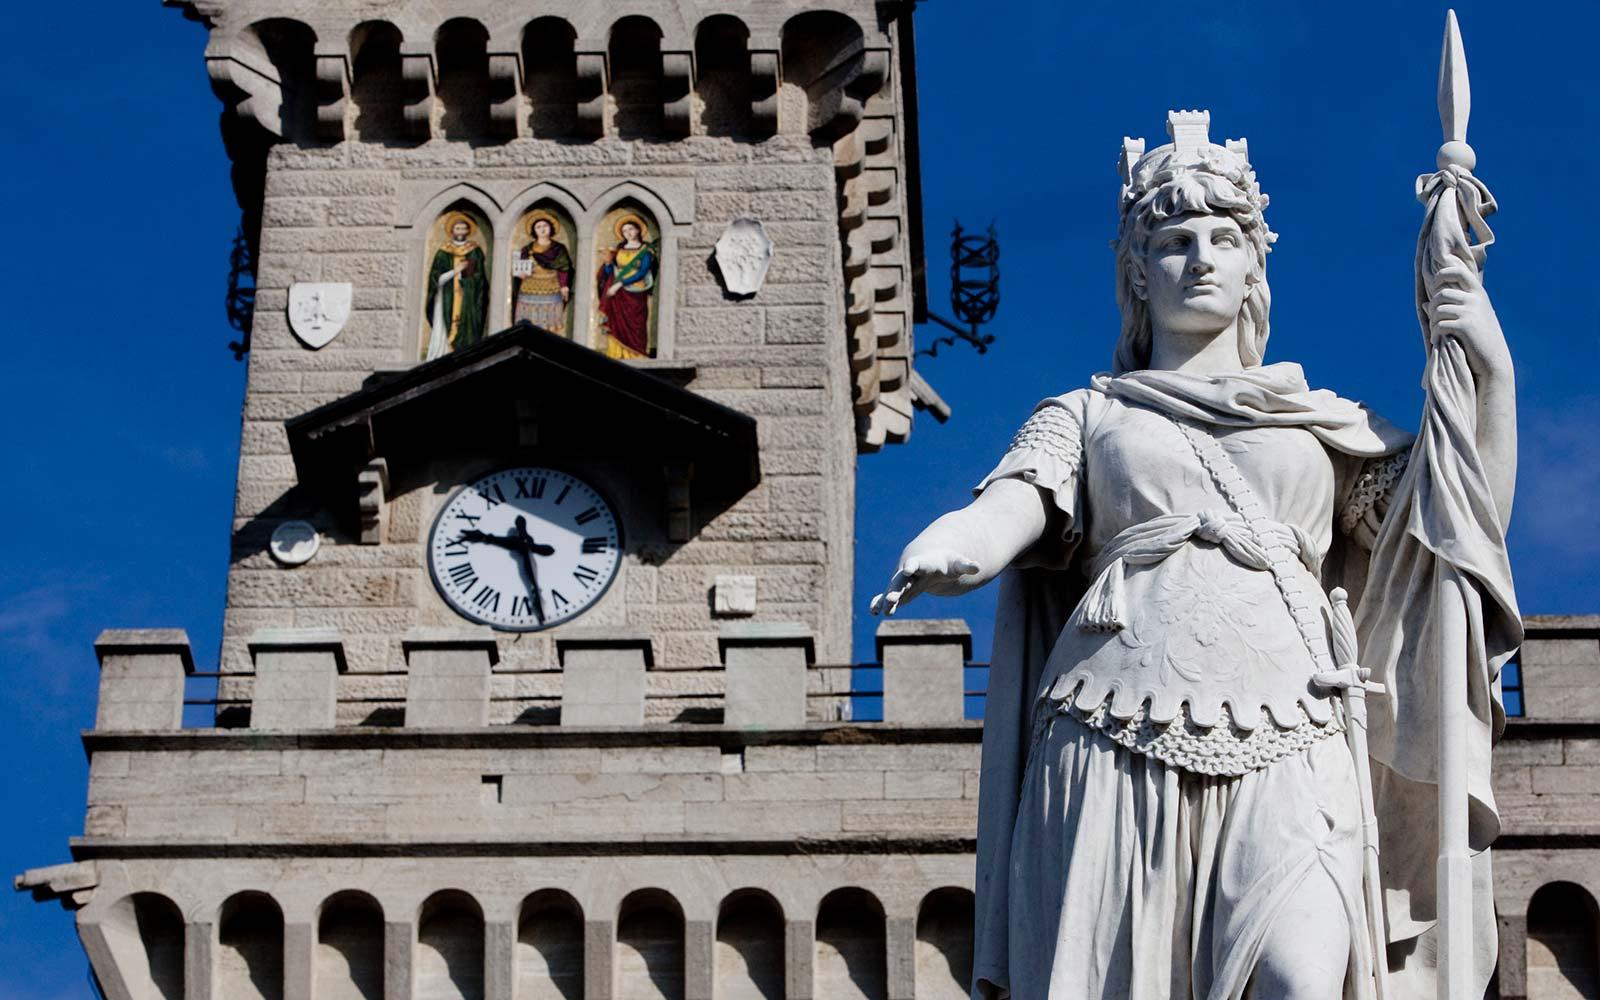 A clock is seen on the Palazzo Publico, or town hall, of the Republic of San Marino